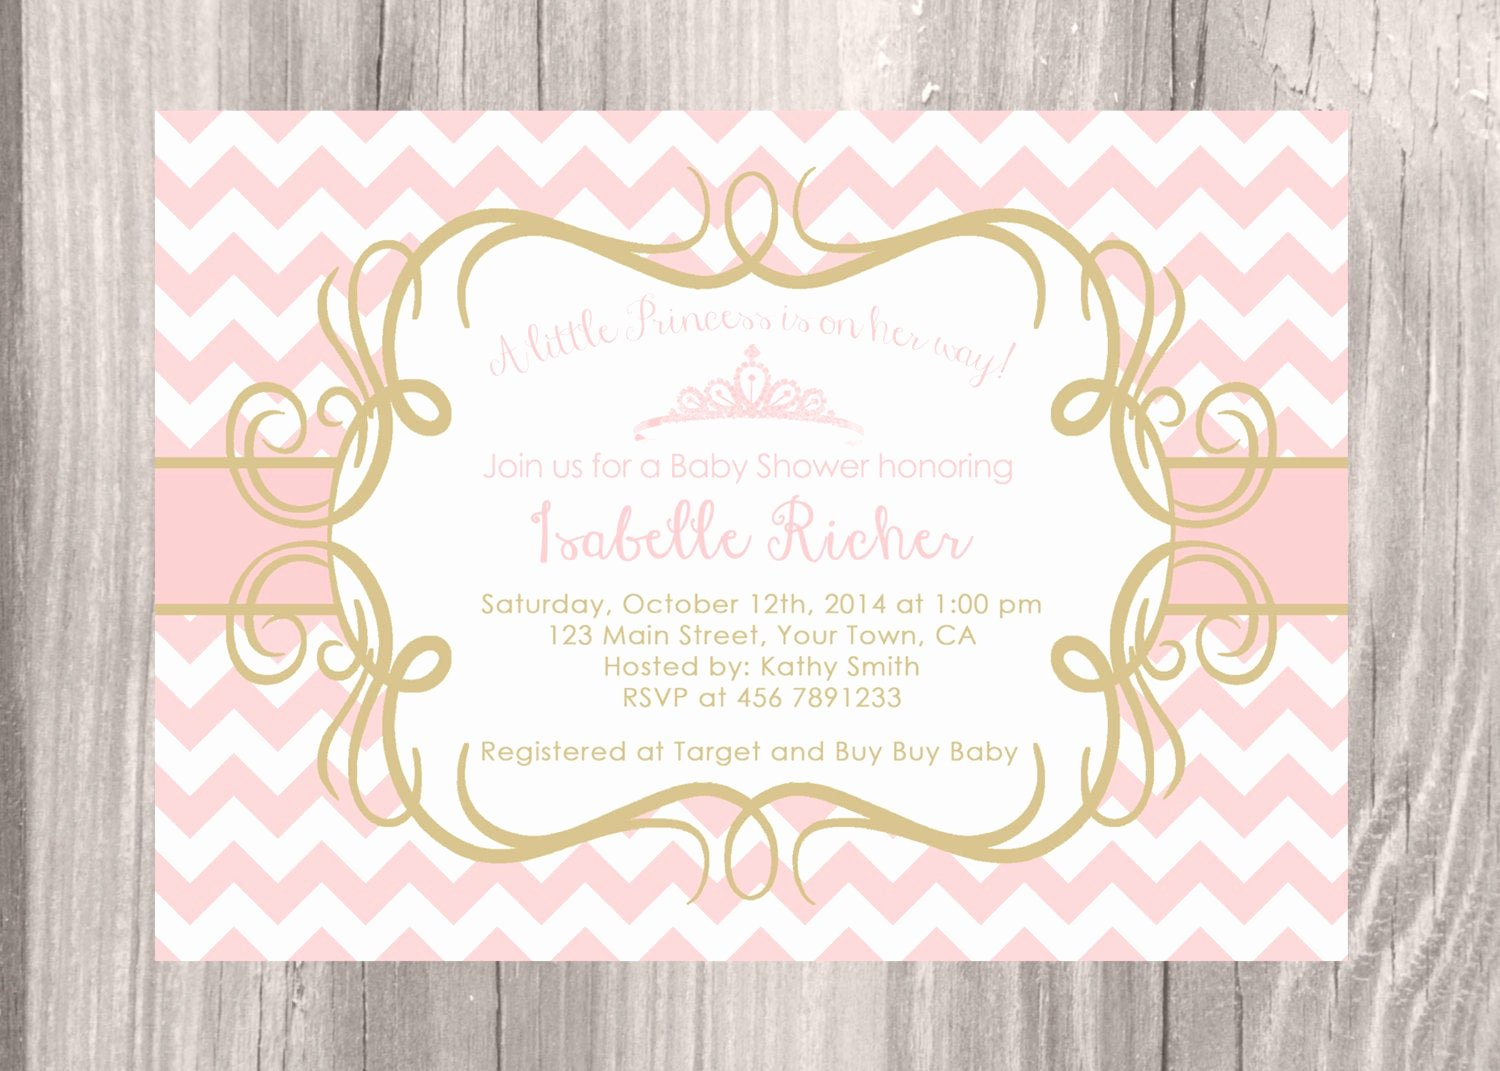 Princess Baby Shower Invitations New Little Princess Baby Shower Invitation Pink by Jcpartyprint